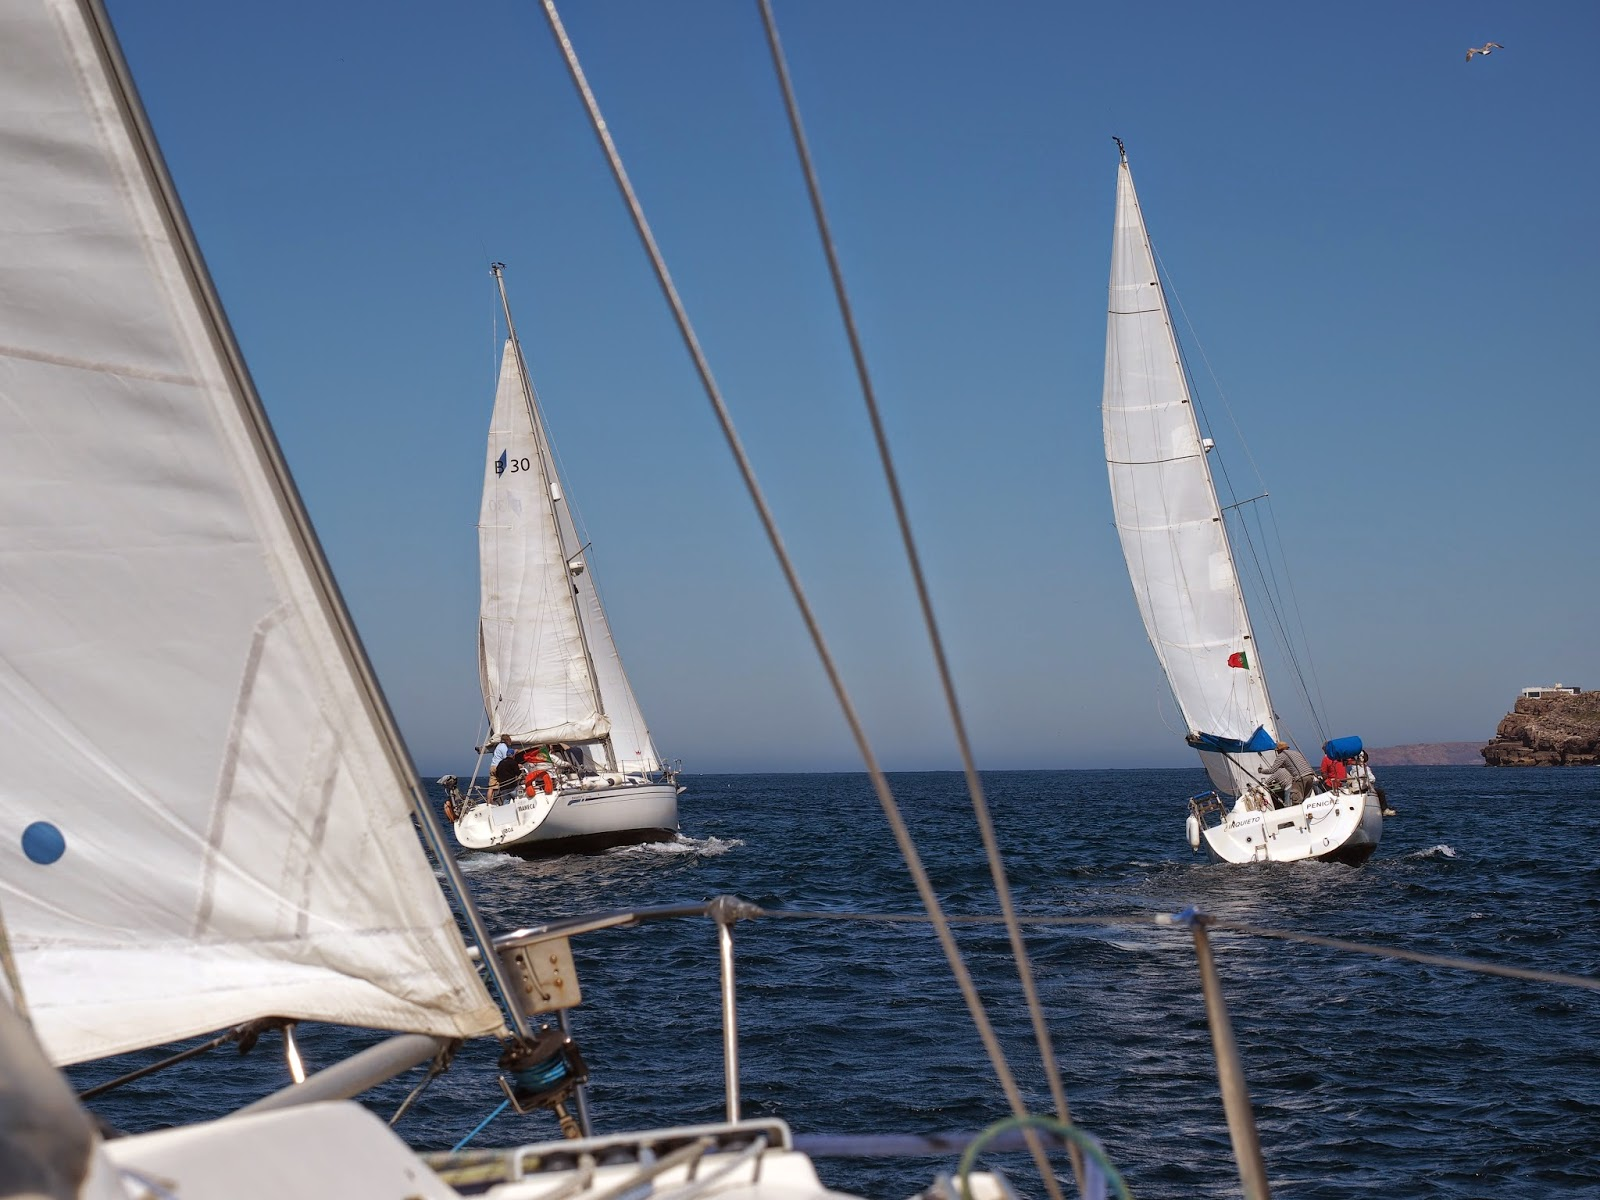 Sailing in Peniche